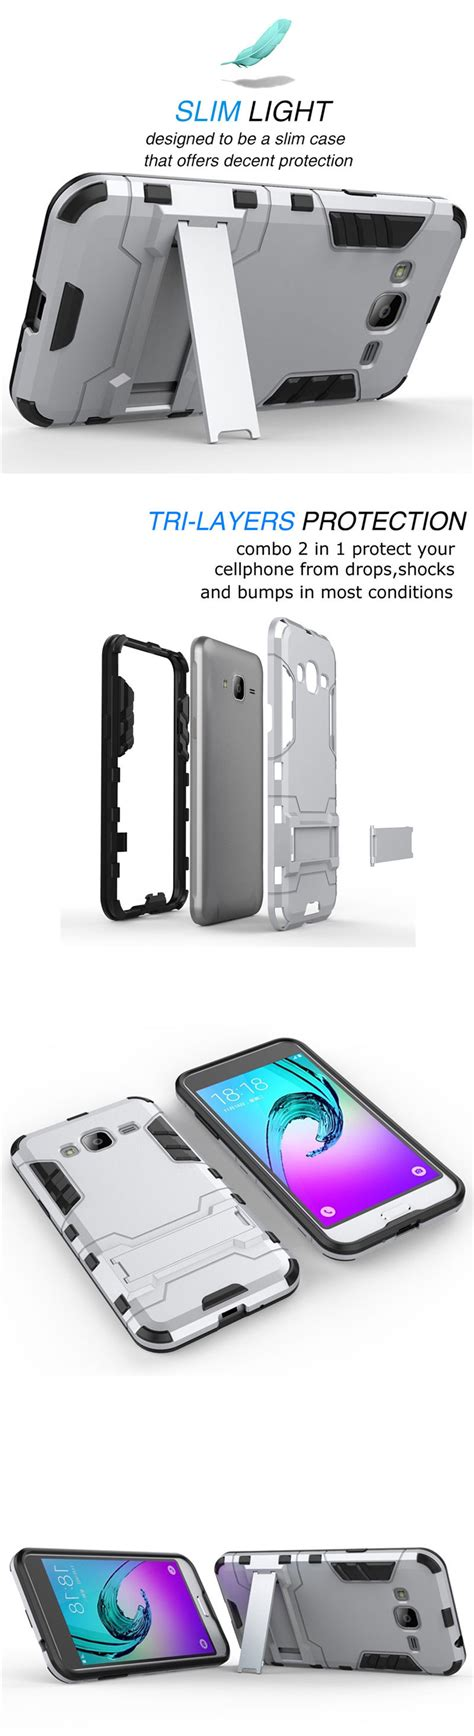 Samsung Galaxy J2 Iron Shockproof Armor Hybrid Casing Bumper Bagus hybrid shockproof rugged cover holster for samsung